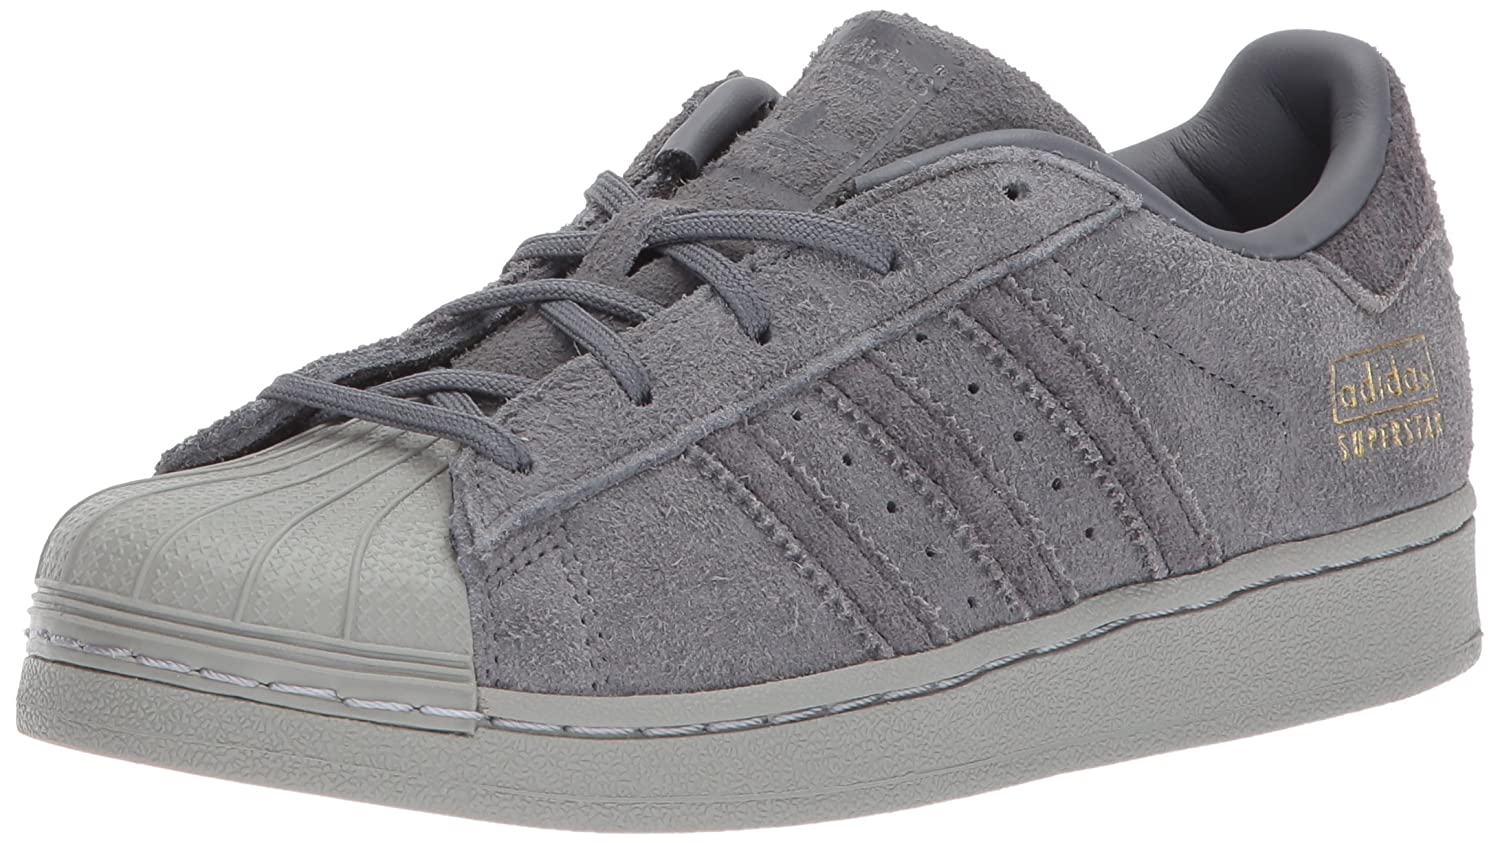 adidas Originals Superstar, Chaussures Unisexe Enfants - Gris - Gris/Noir/Or (Grey Five/Utility Black/Metallic Gold), 31.5 M EU Niño Pequeño EU